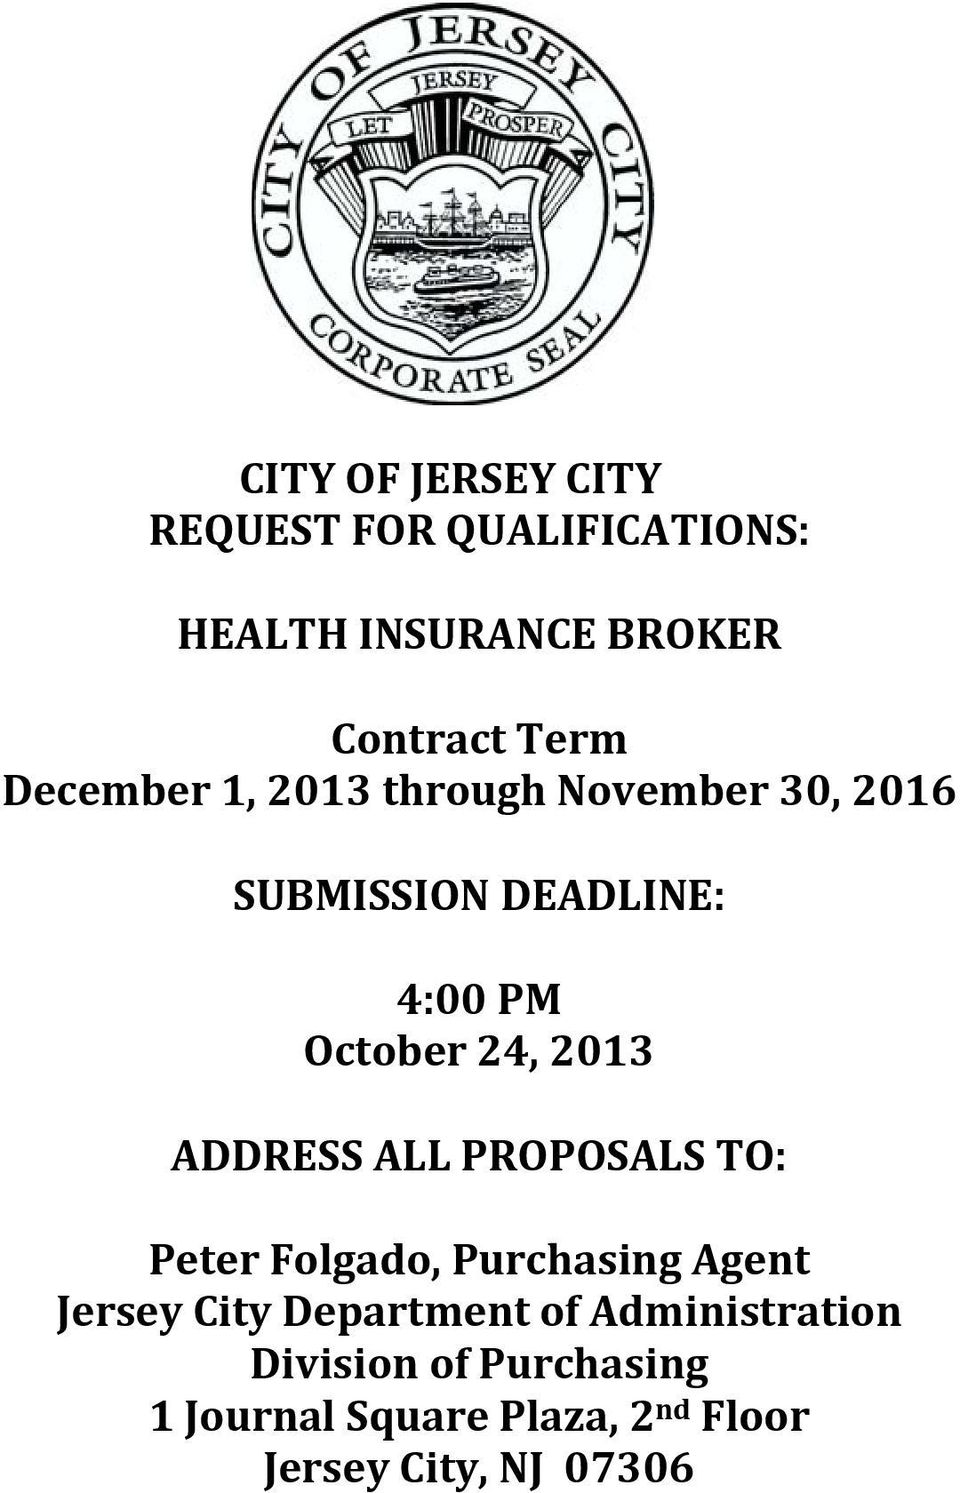 ADDRESS ALL PROPOSALS TO: Peter Folgado, Purchasing Agent Jersey City Department of